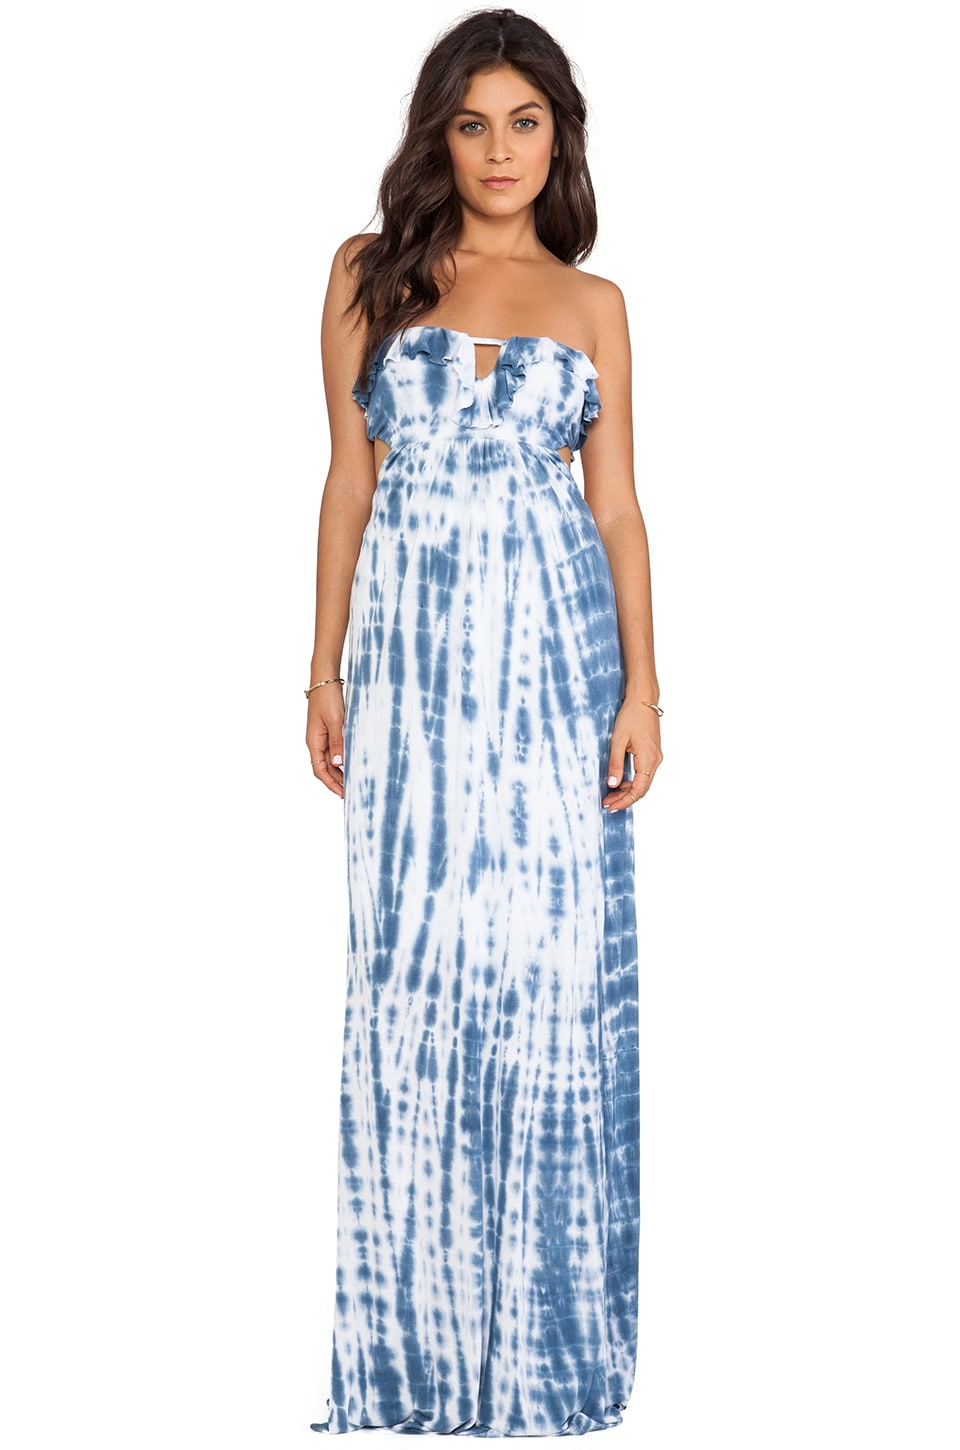 WOODLEIGH Natalia Maxi Dress in Navy